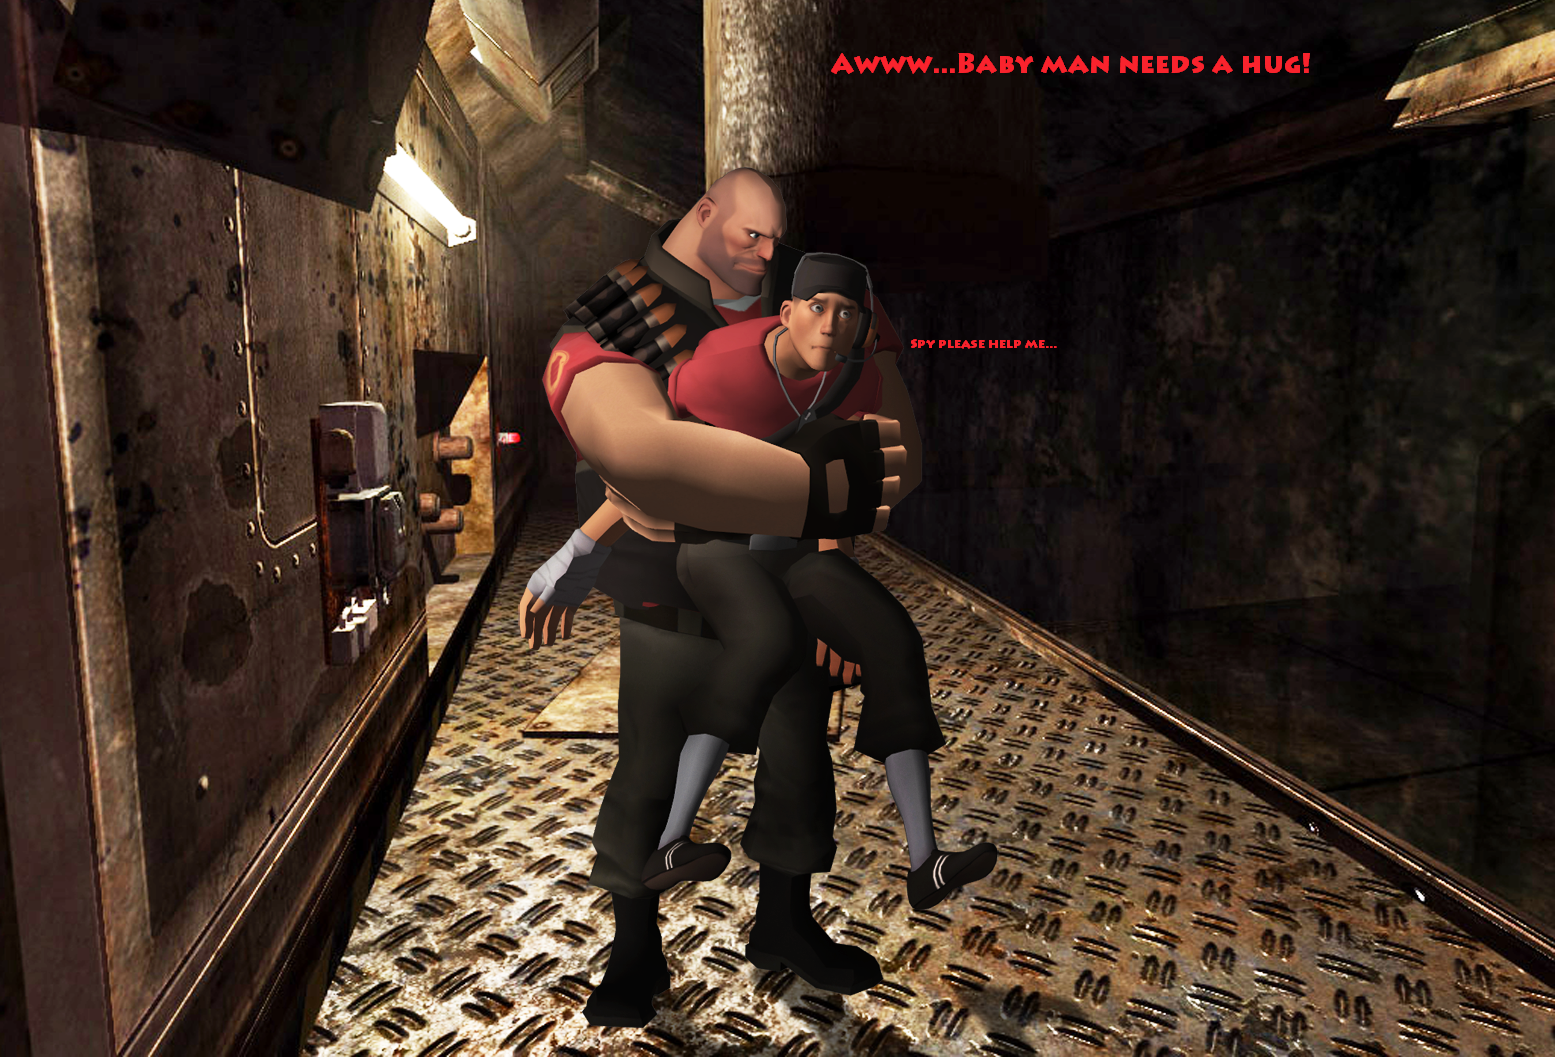 TF2: Baby Man NEEDS A HUG! by SovietMentality